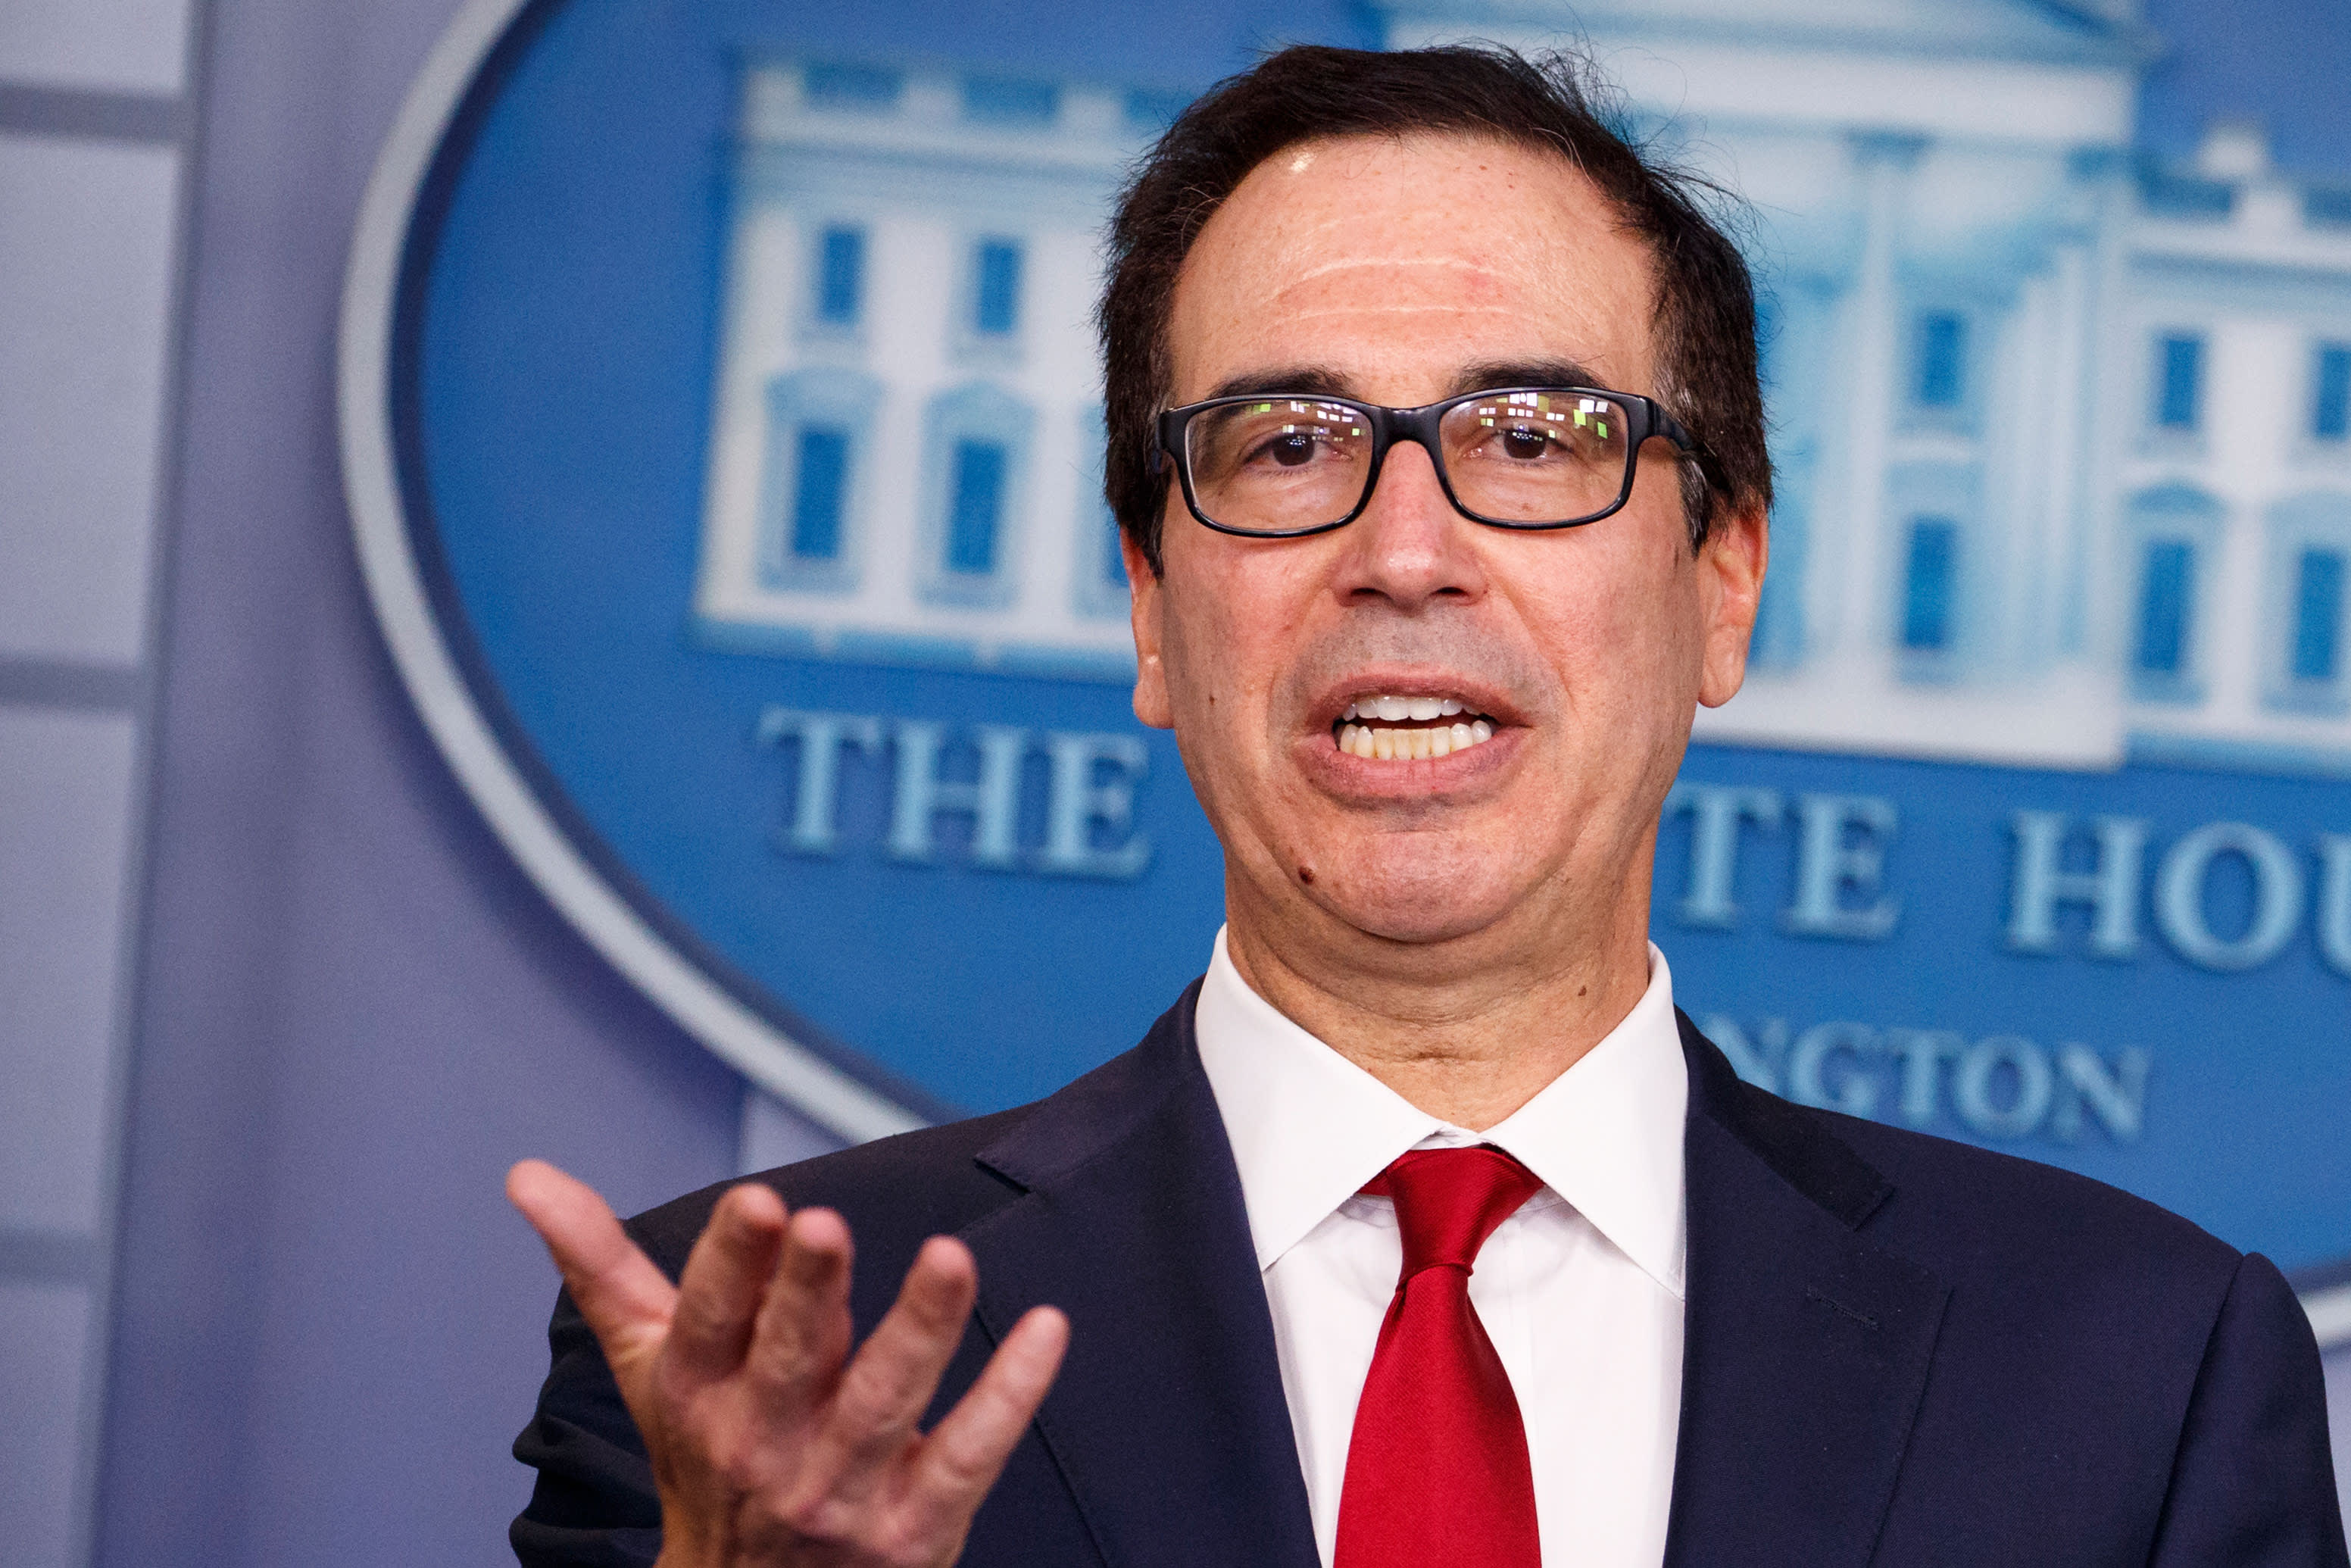 Mnuchin: US has 'very serious concerns' that Facebook's Libra could be misused by terrorists